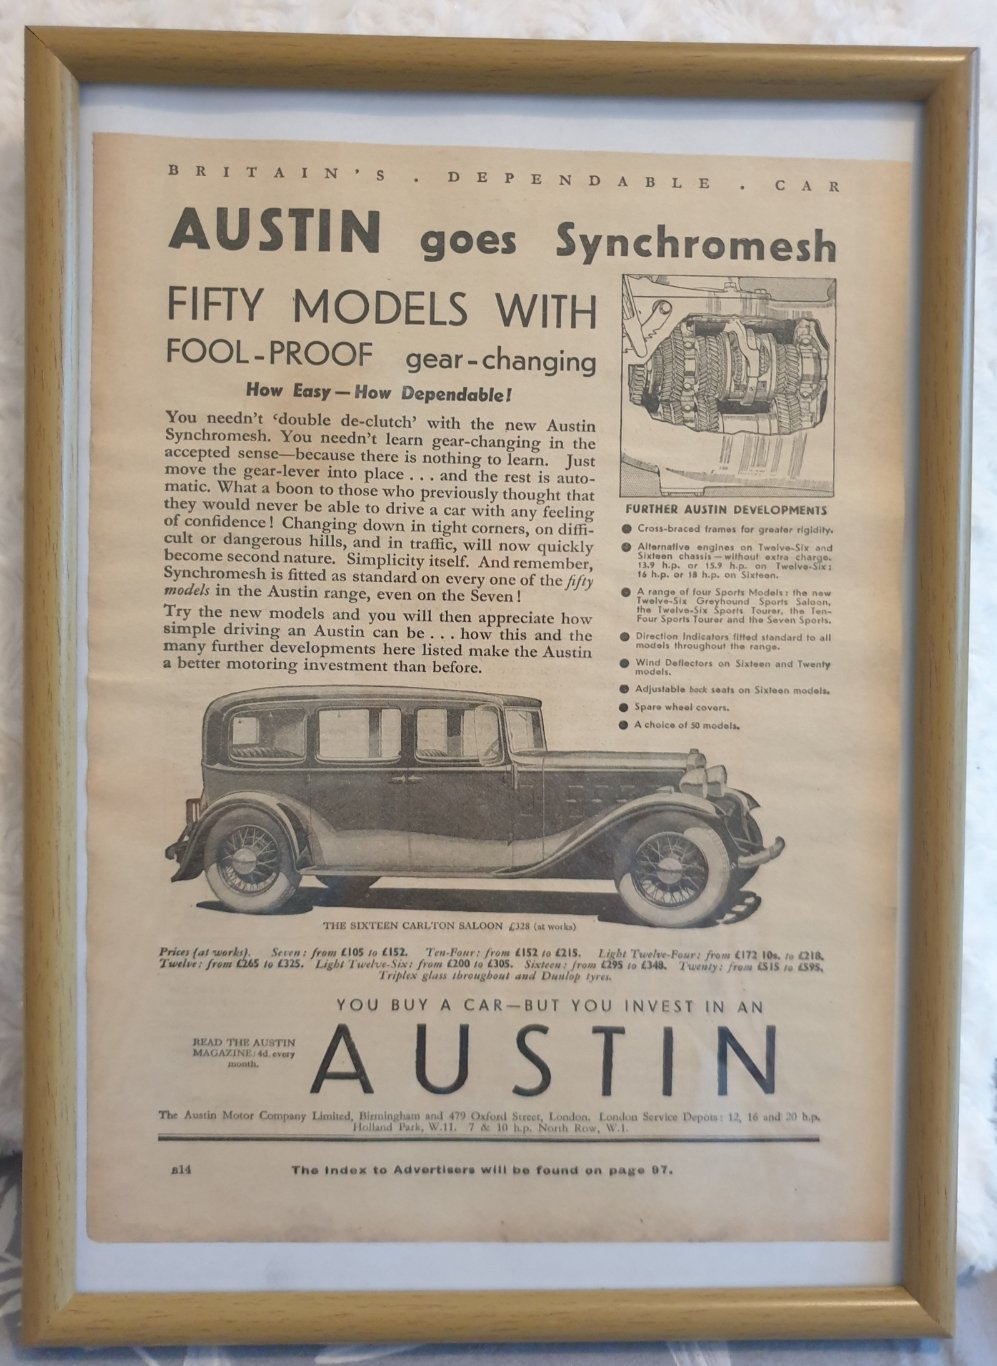 Original 1933 Austin Sixteen Framed Advert